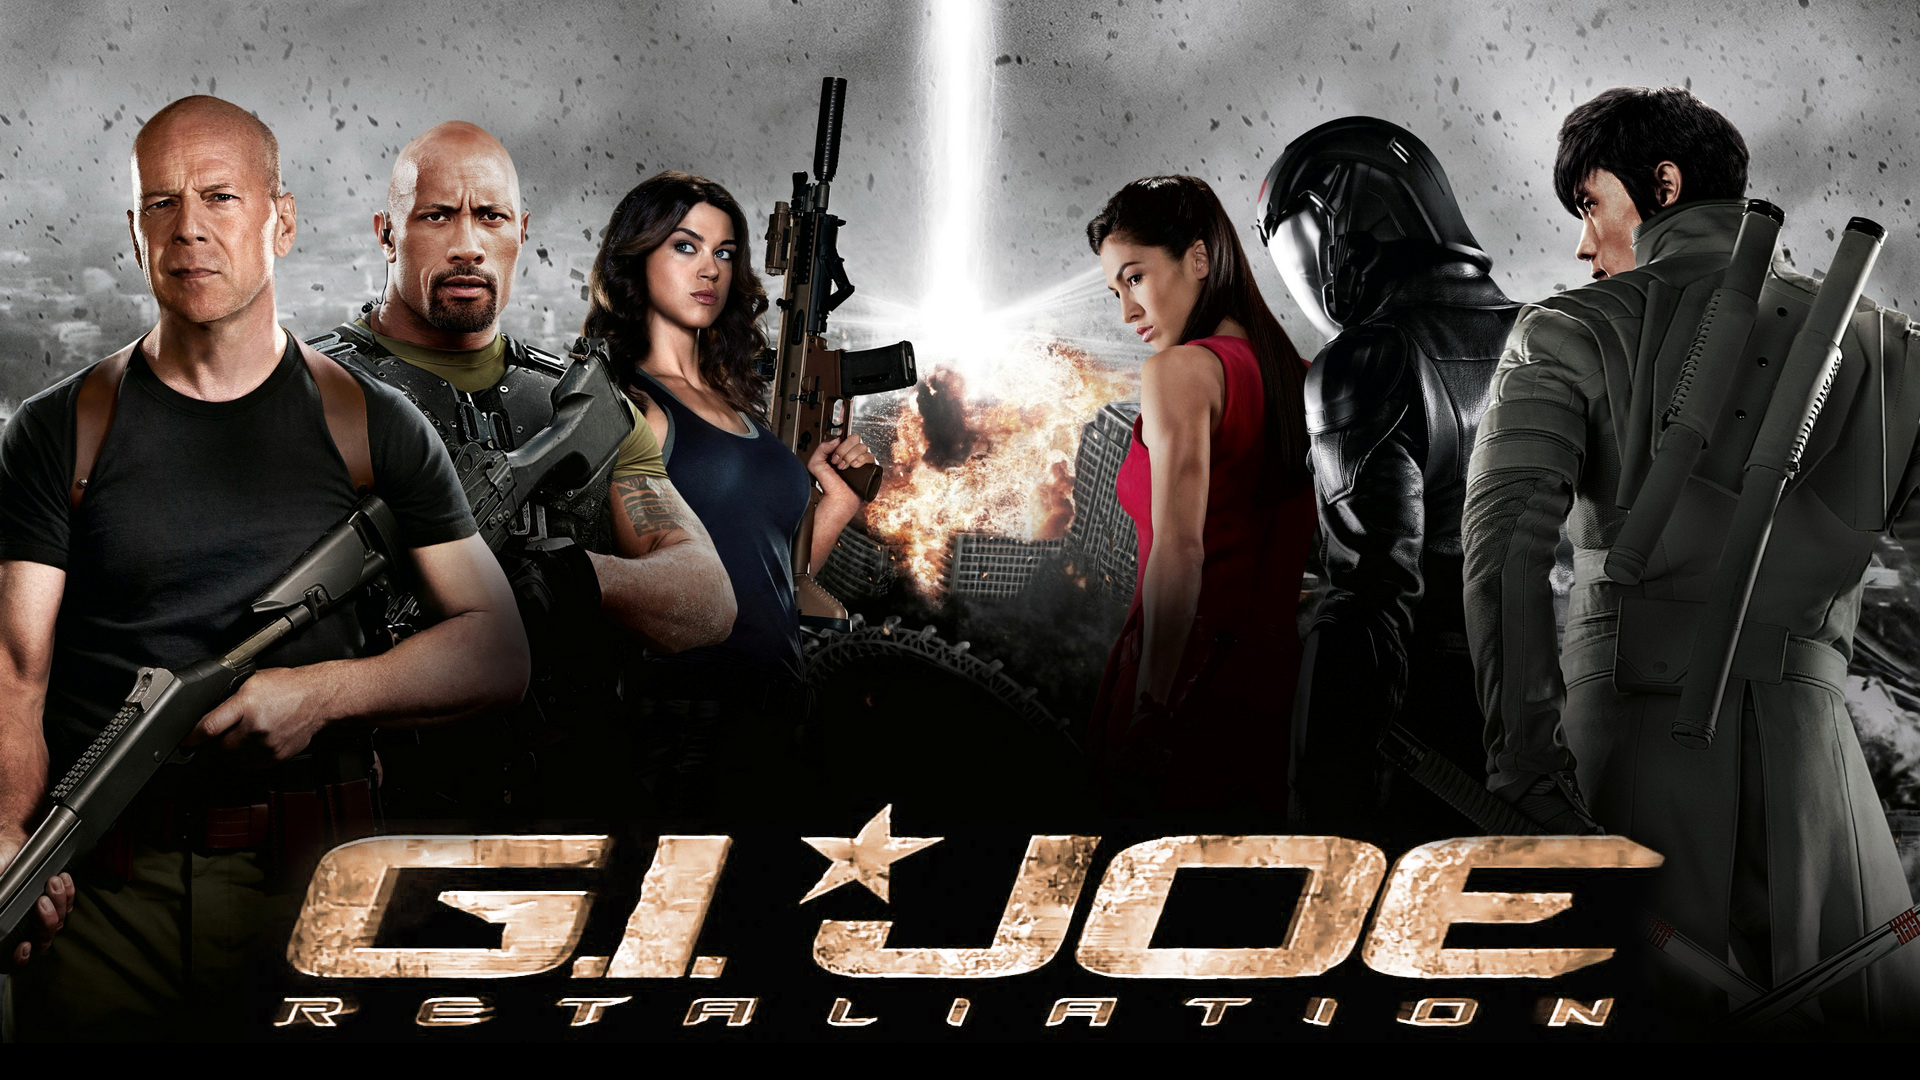 Amazing GI Joe Retaliation Wallpaper